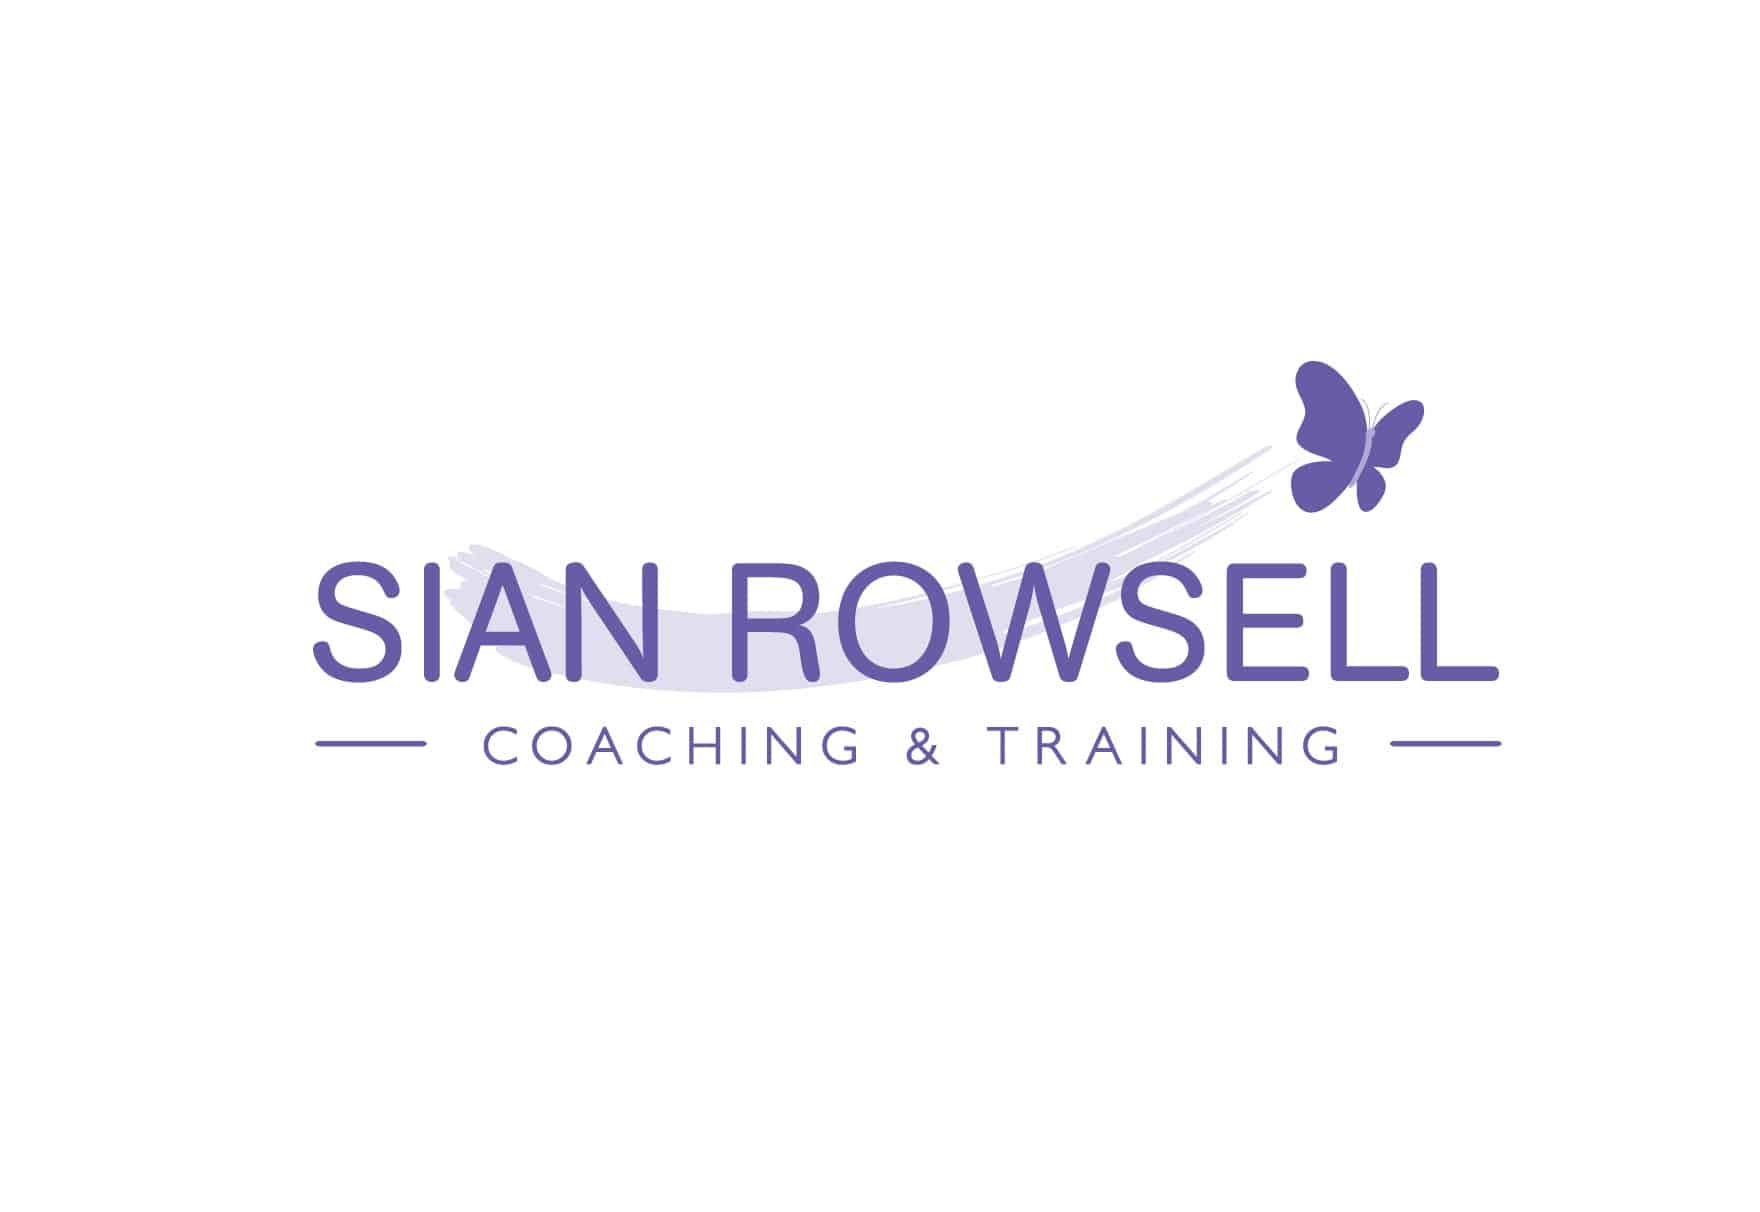 sian-rowsell-logo-design